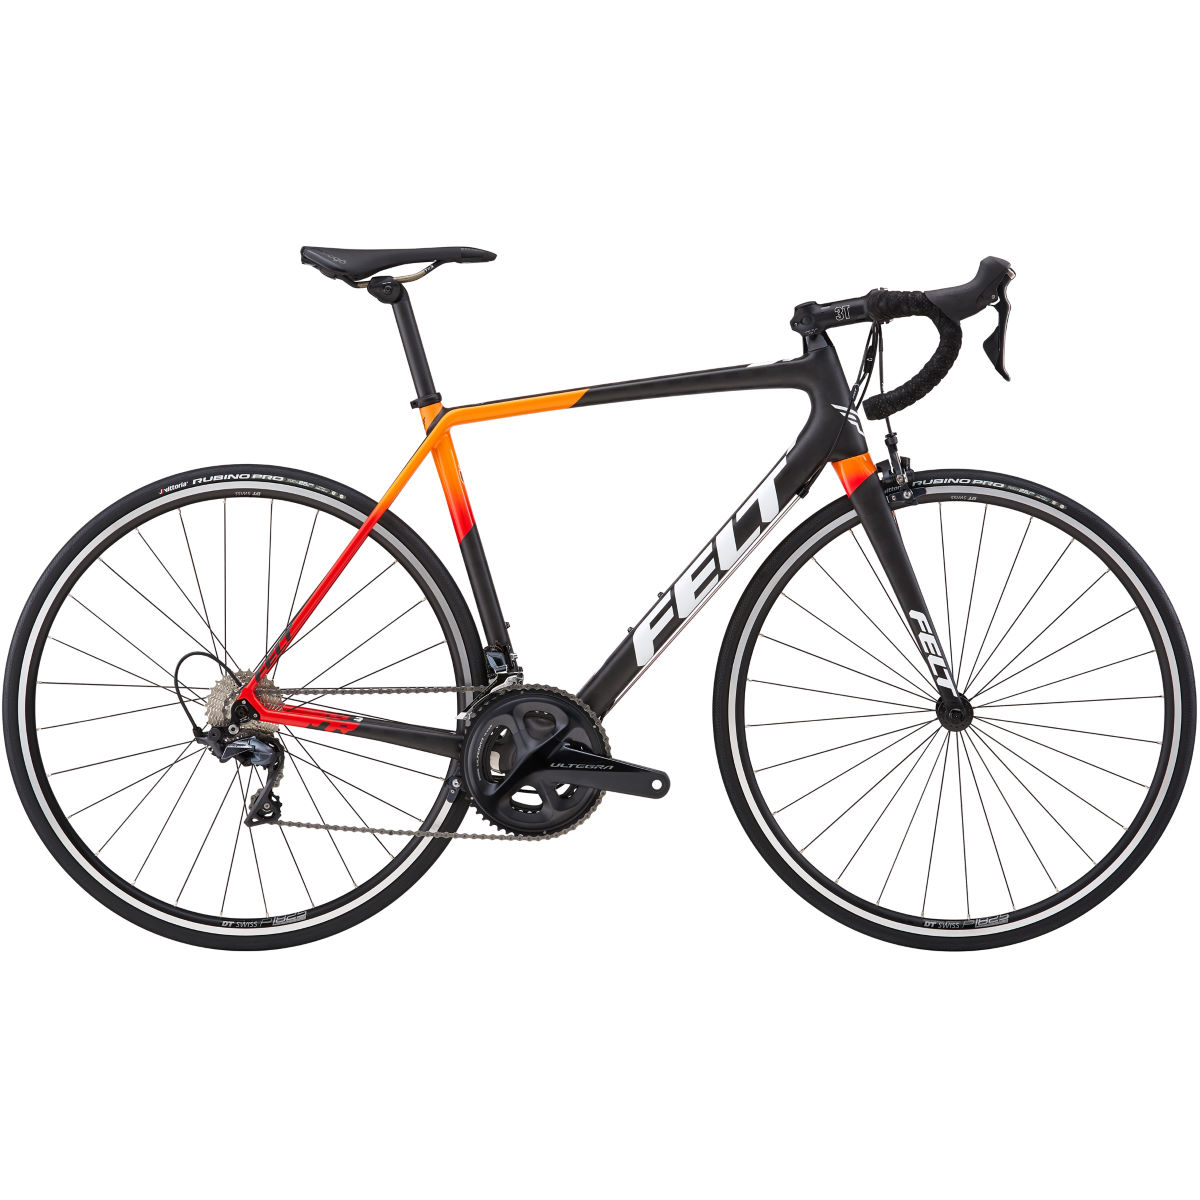 Vélo de route Felt FR3 Race (2018) - 58cm Stock Bike Vélos de route